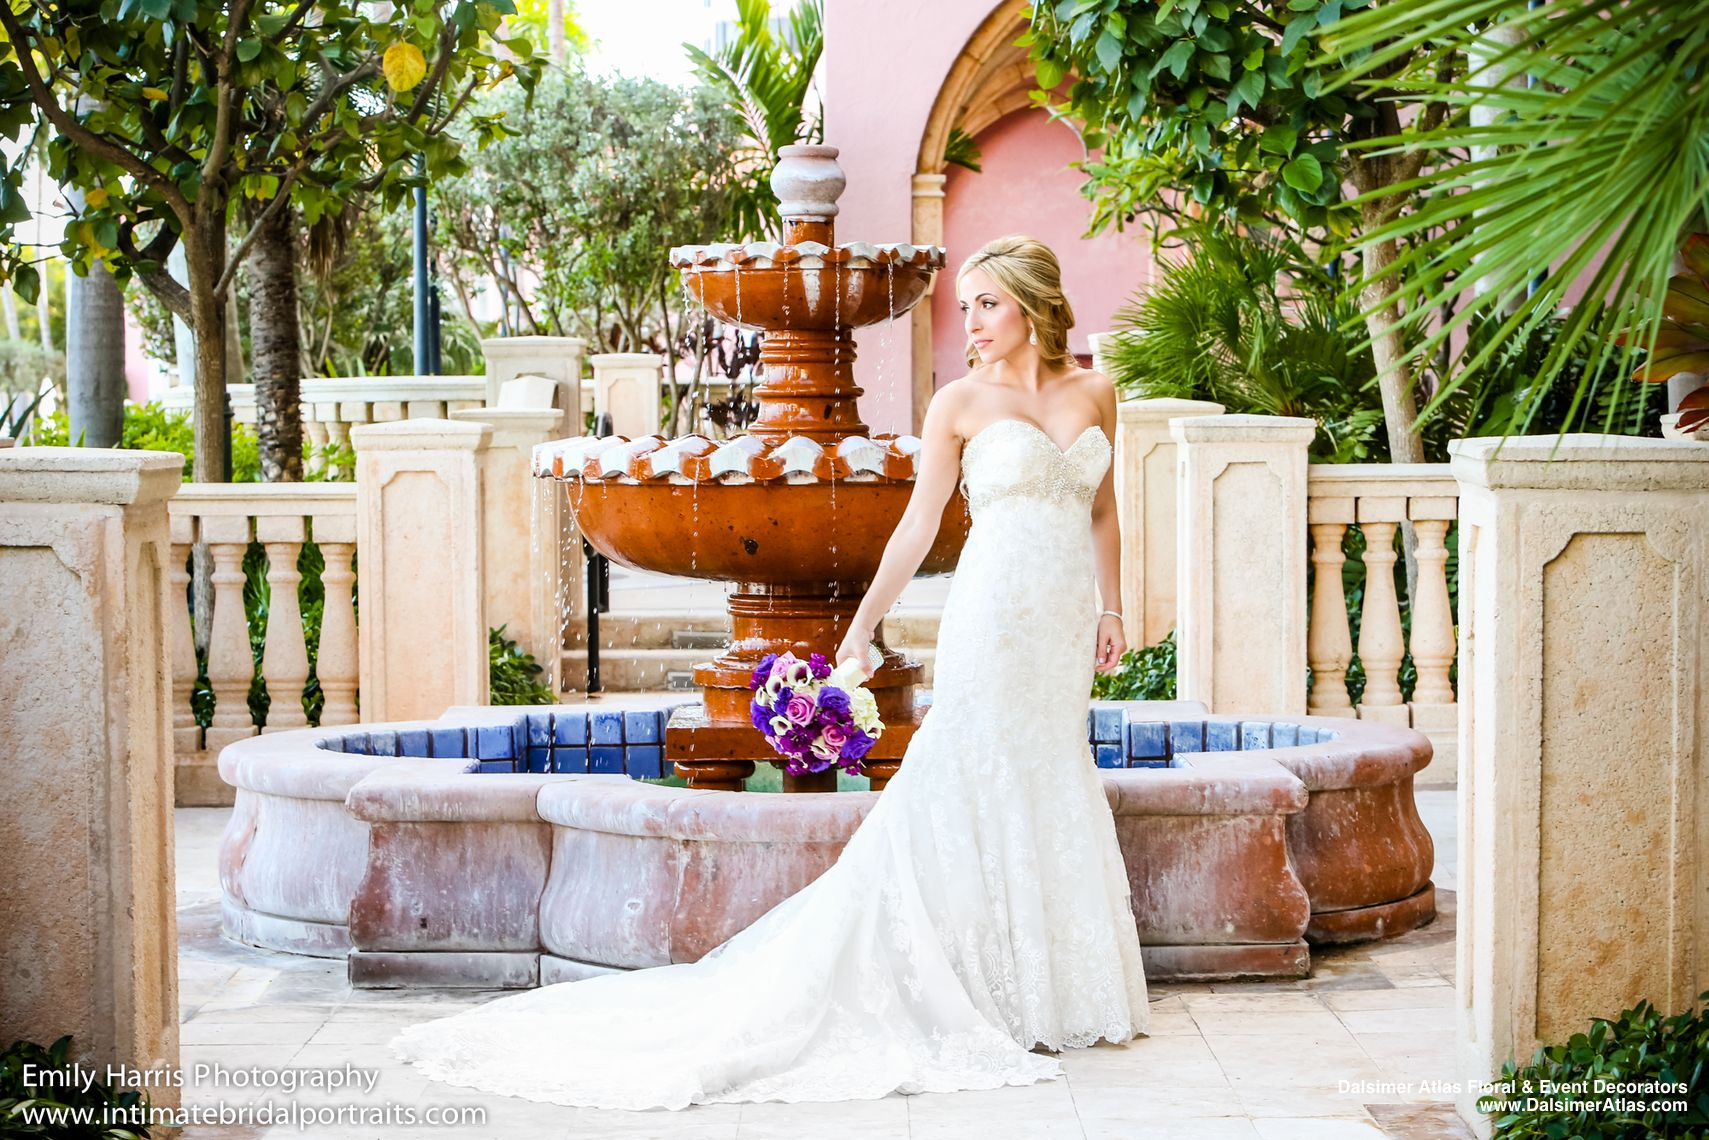 wedding-florist-flowers-decorations-bnai-israel-boca-raton-florida-dalsimer-atlas-4